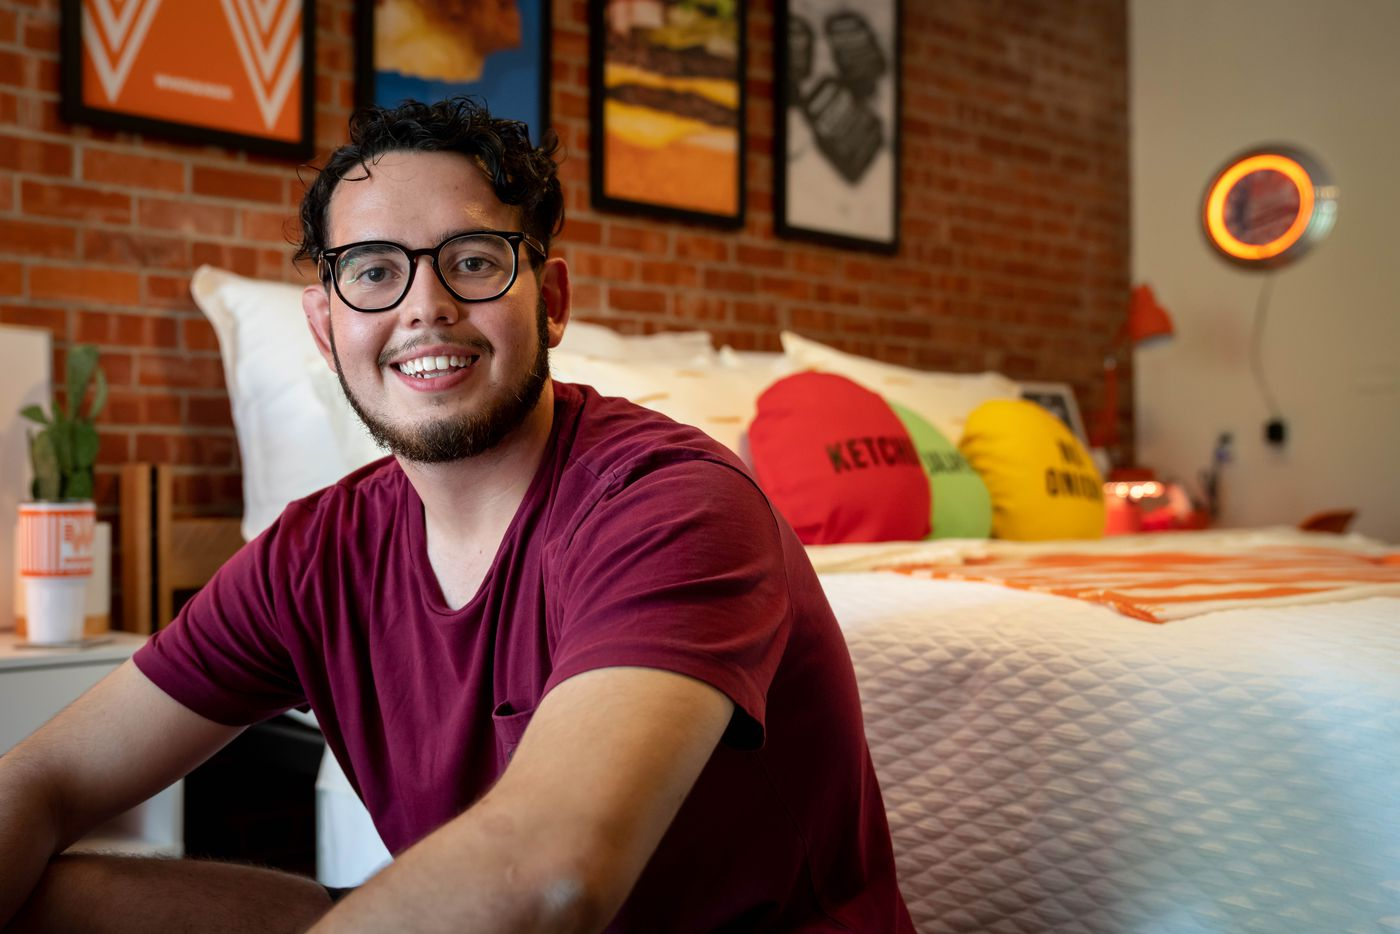 Enrique Alcoreza is from El Paso but goes to Trinity University in San Antonio. Whataburger out-Whataburgered themselves by decking out his dorm in orange and white.